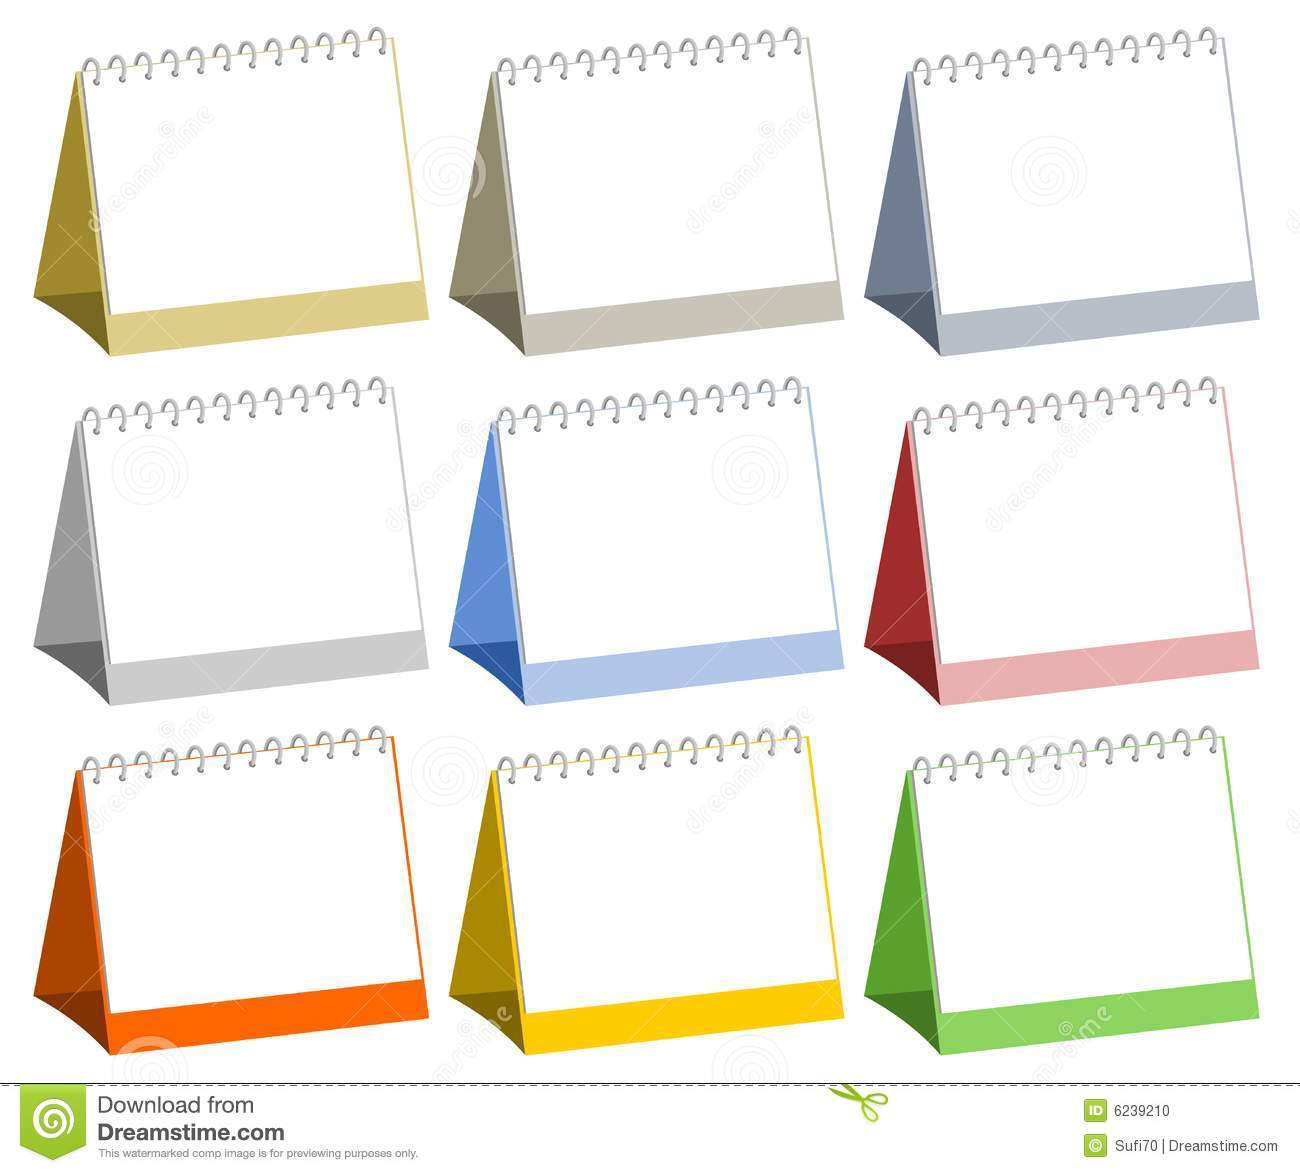 Calendar Clipart Stock Photos Pictures Royalty Free Blank Table Calendars Stock Photo Image 6239210